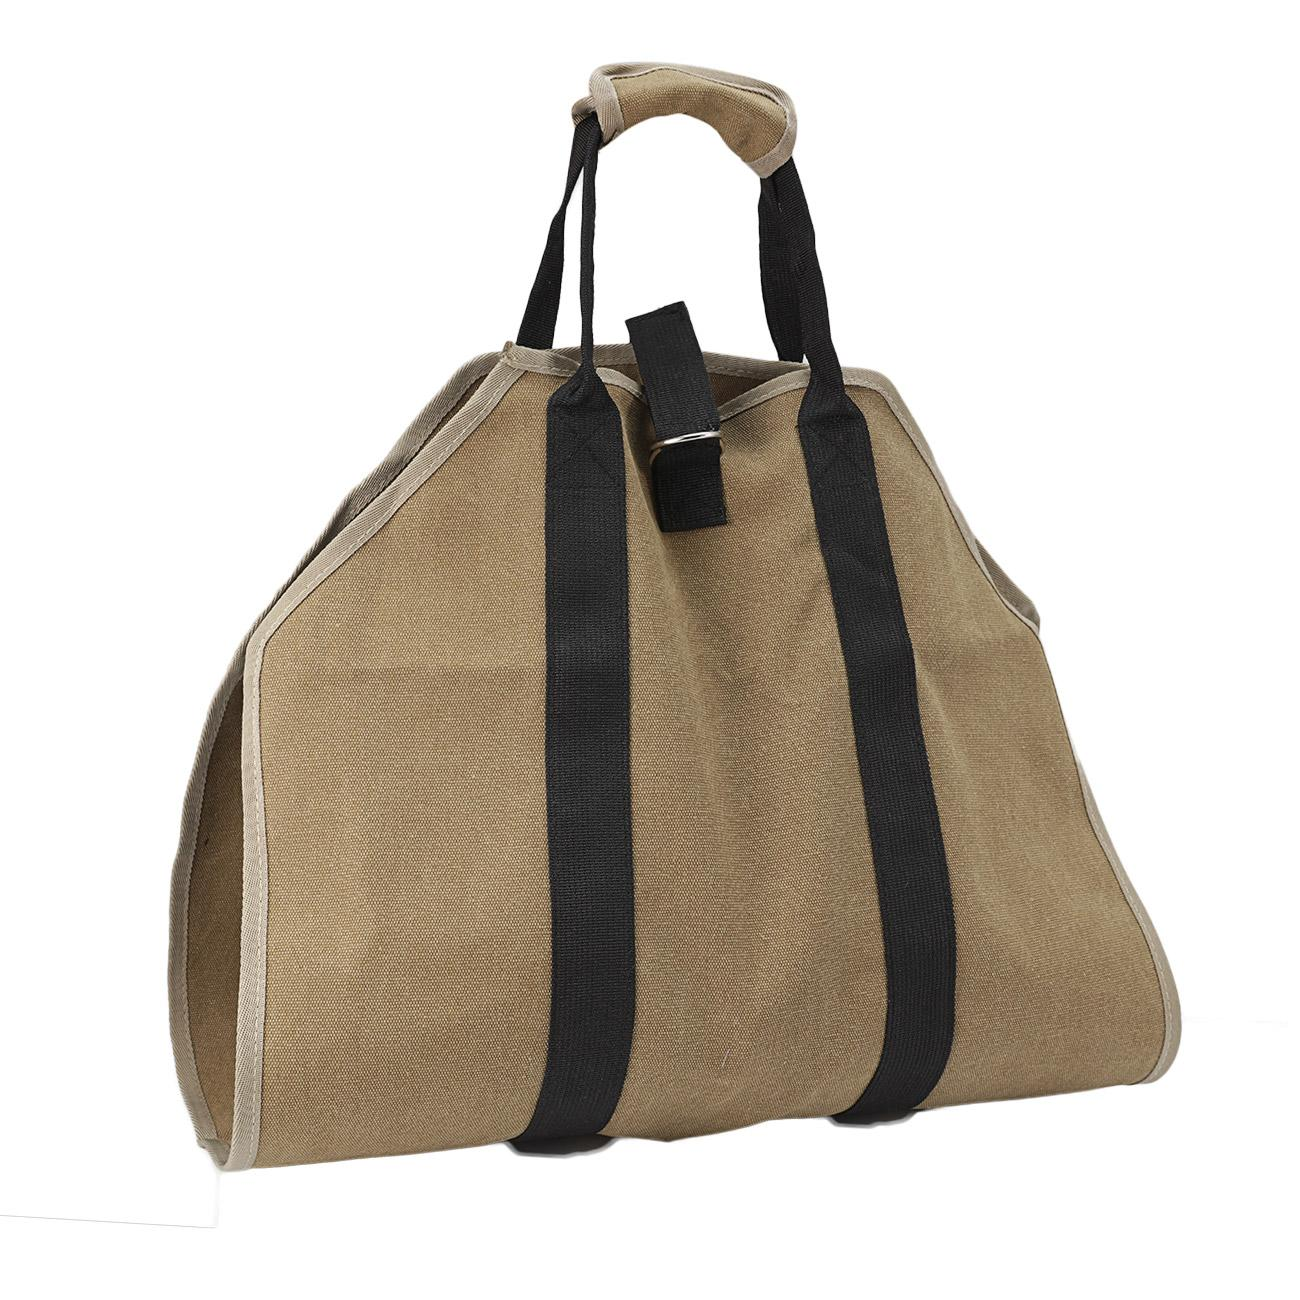 Details About Outdoor Log Carrier Firewood Tote Wood Carrying Bag Fireplace Waxed Canvas